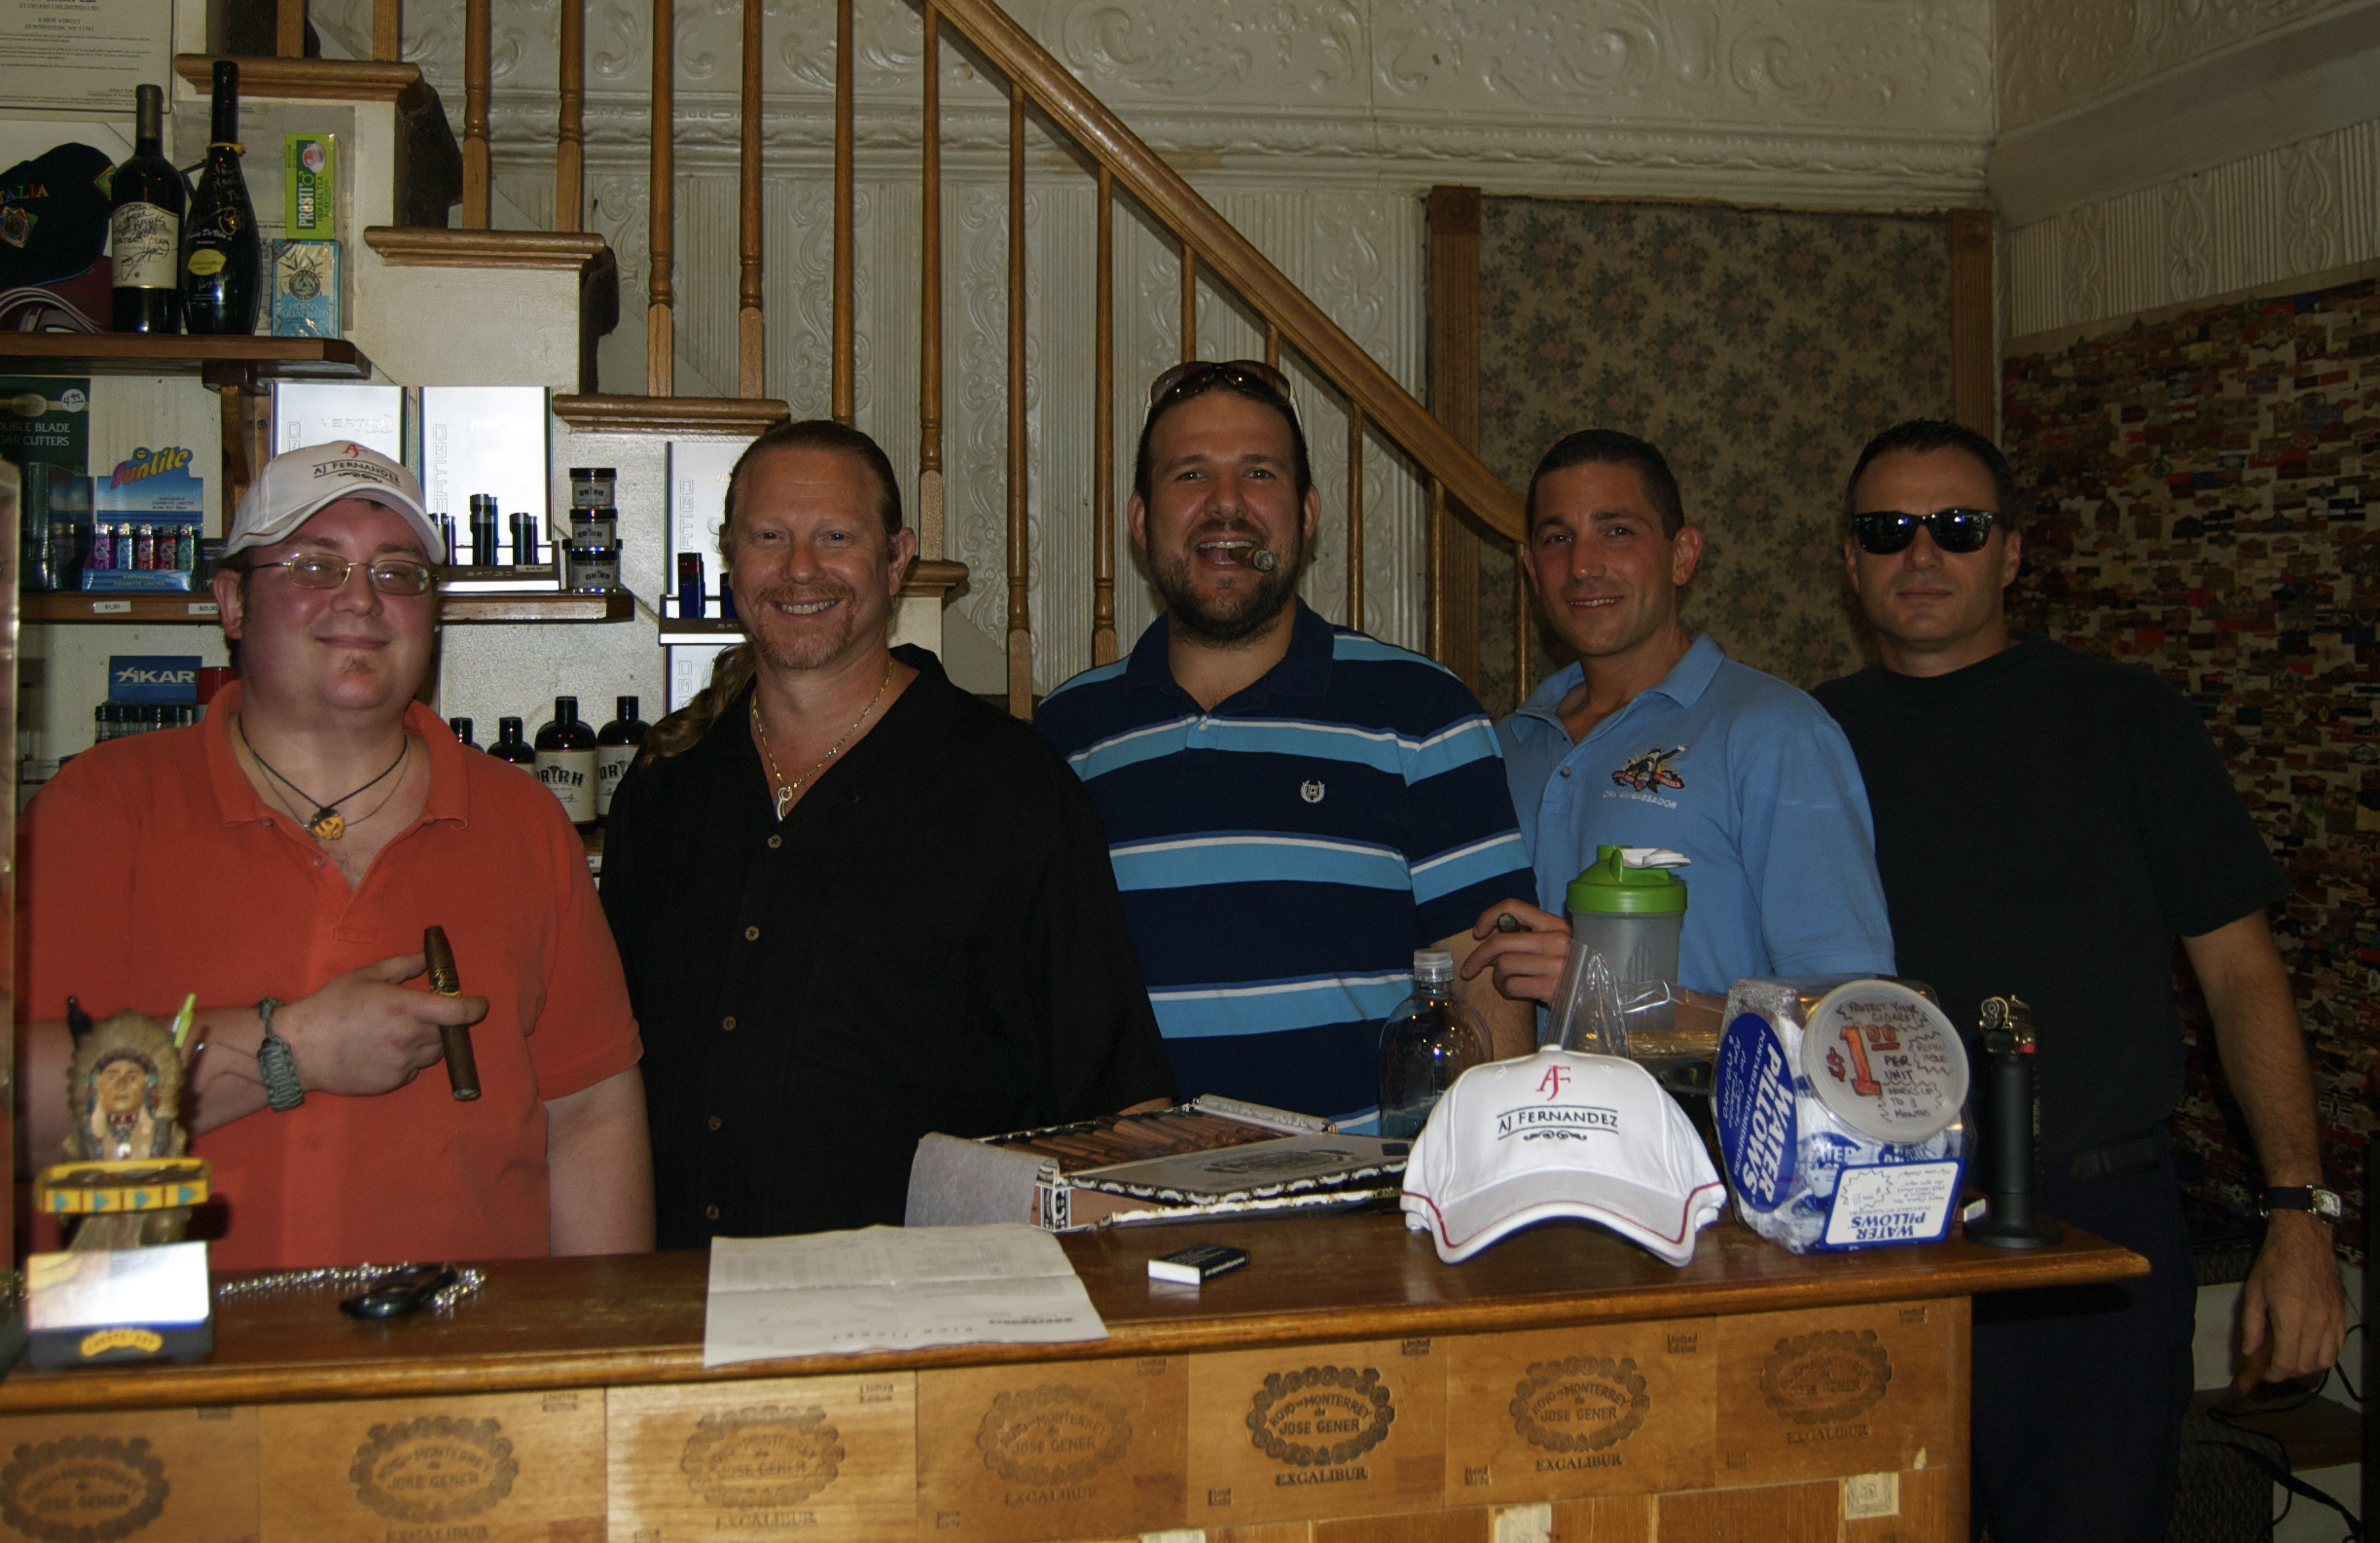 Huntington Humidor - Group